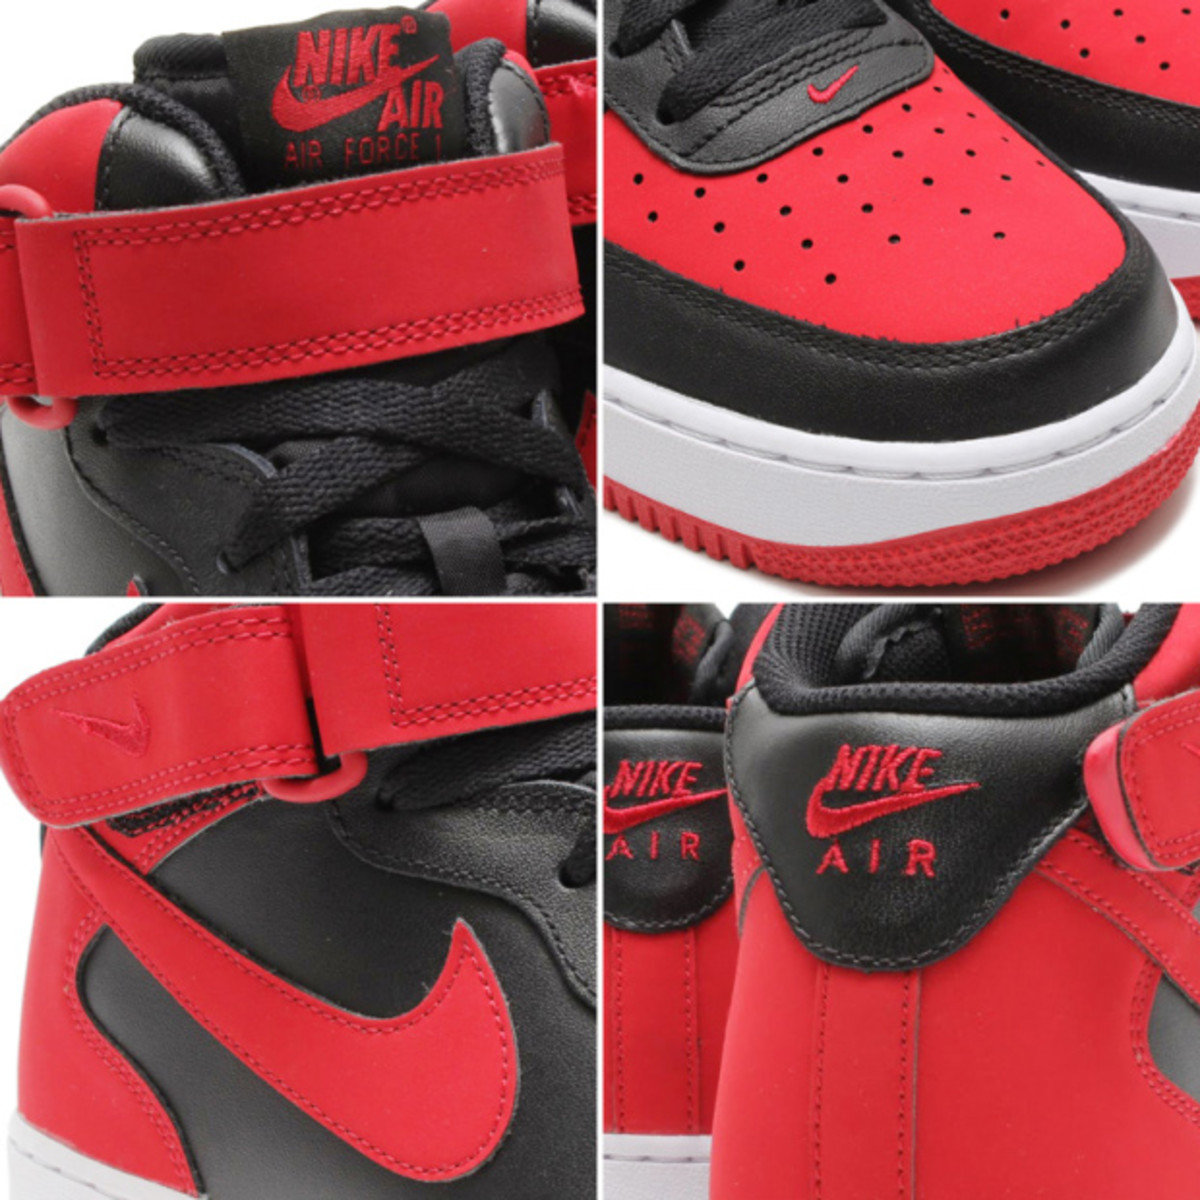 nike-air-force-1-mid-bred-01